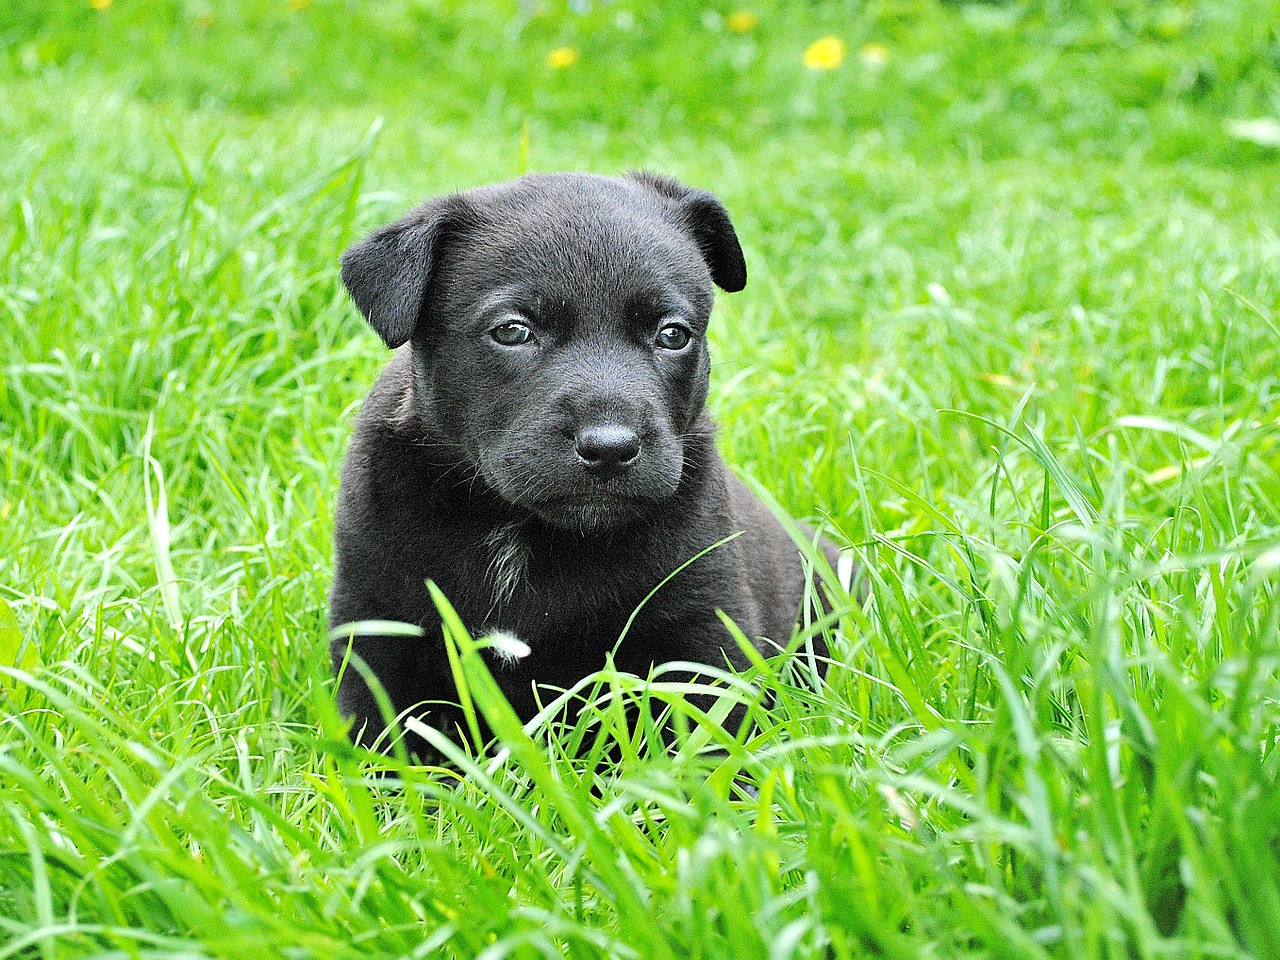 A black Labrador puppy sitting in some grass in a field.